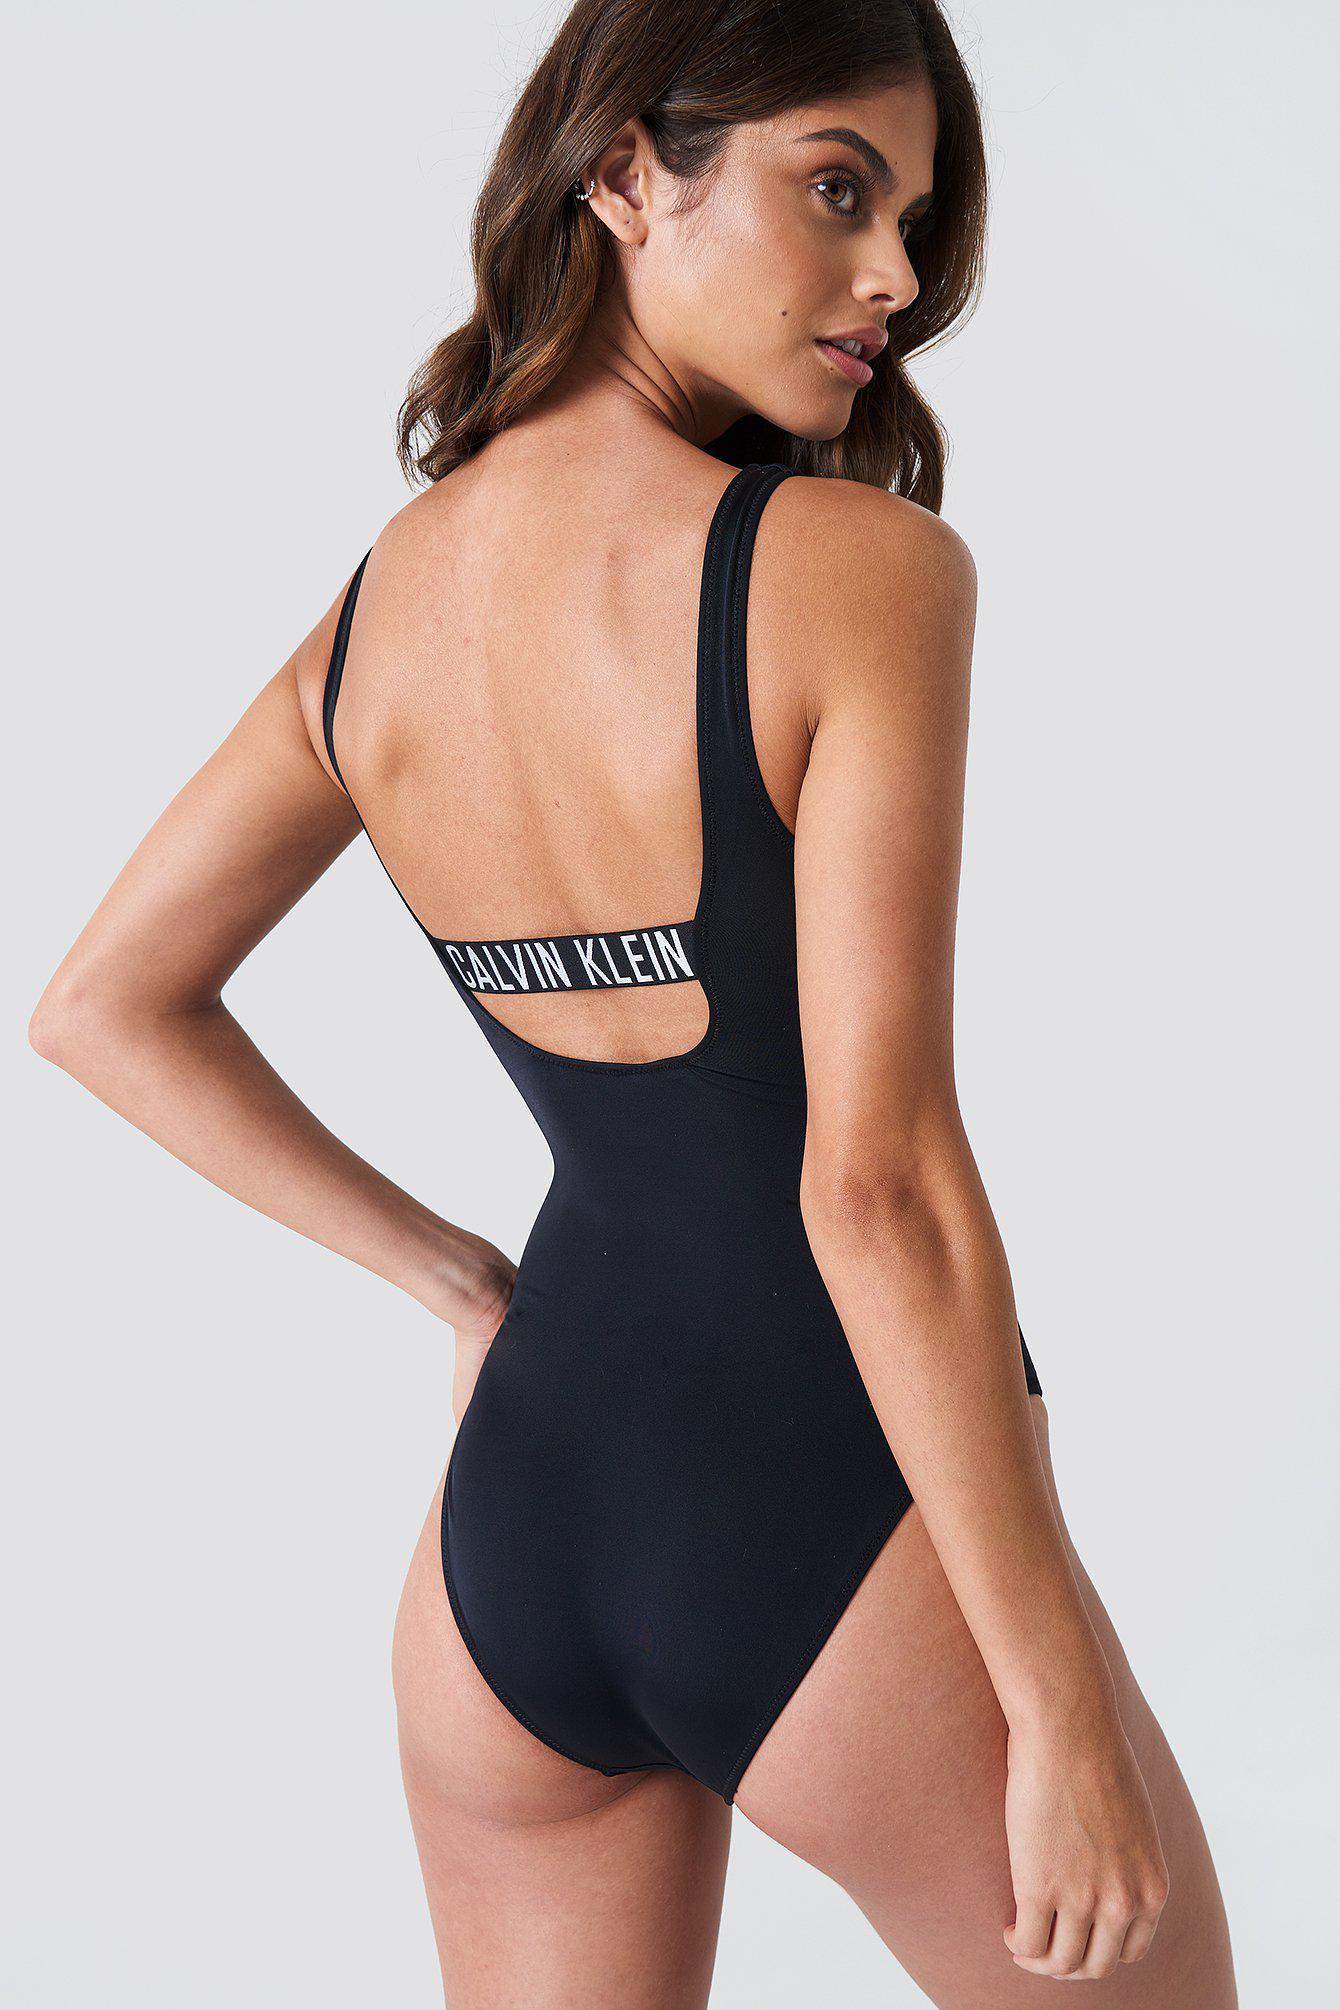 bc8f90a472 Calvin Klein Square Scoop One Piece Rp Pvh Black in Black - Lyst